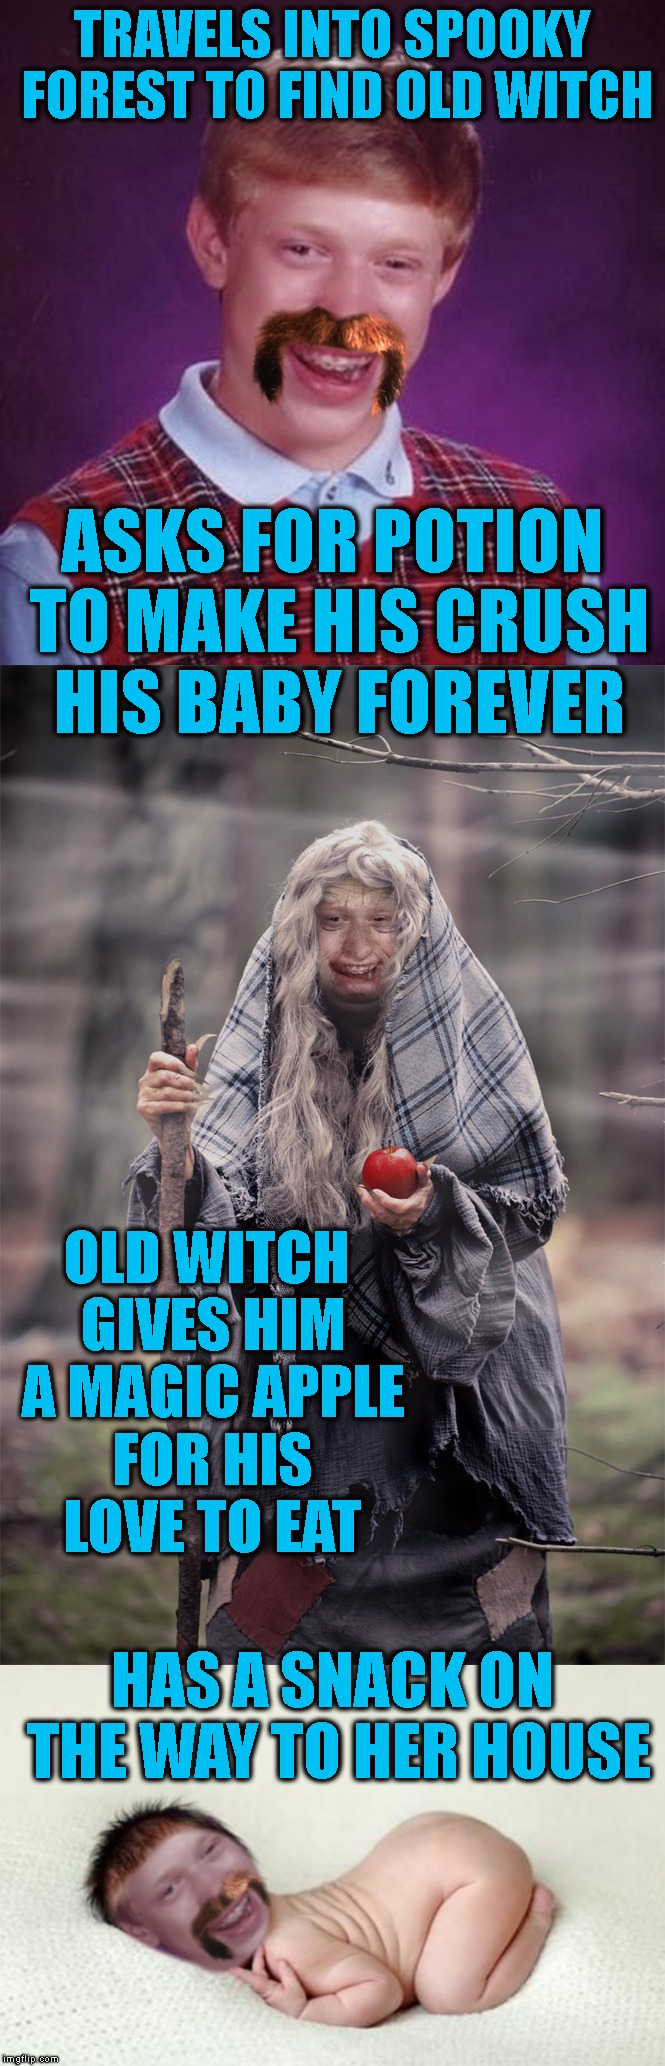 That's Some Bad Luck, Baby | TRAVELS INTO SPOOKY FOREST TO FIND OLD WITCH HAS A SNACK ON THE WAY TO HER HOUSE ASKS FOR POTION TO MAKE HIS CRUSH HIS BABY FOREVER OLD WITC | image tagged in bad luck brian,bad luck baby,blb,fairy tales,baby,love | made w/ Imgflip meme maker